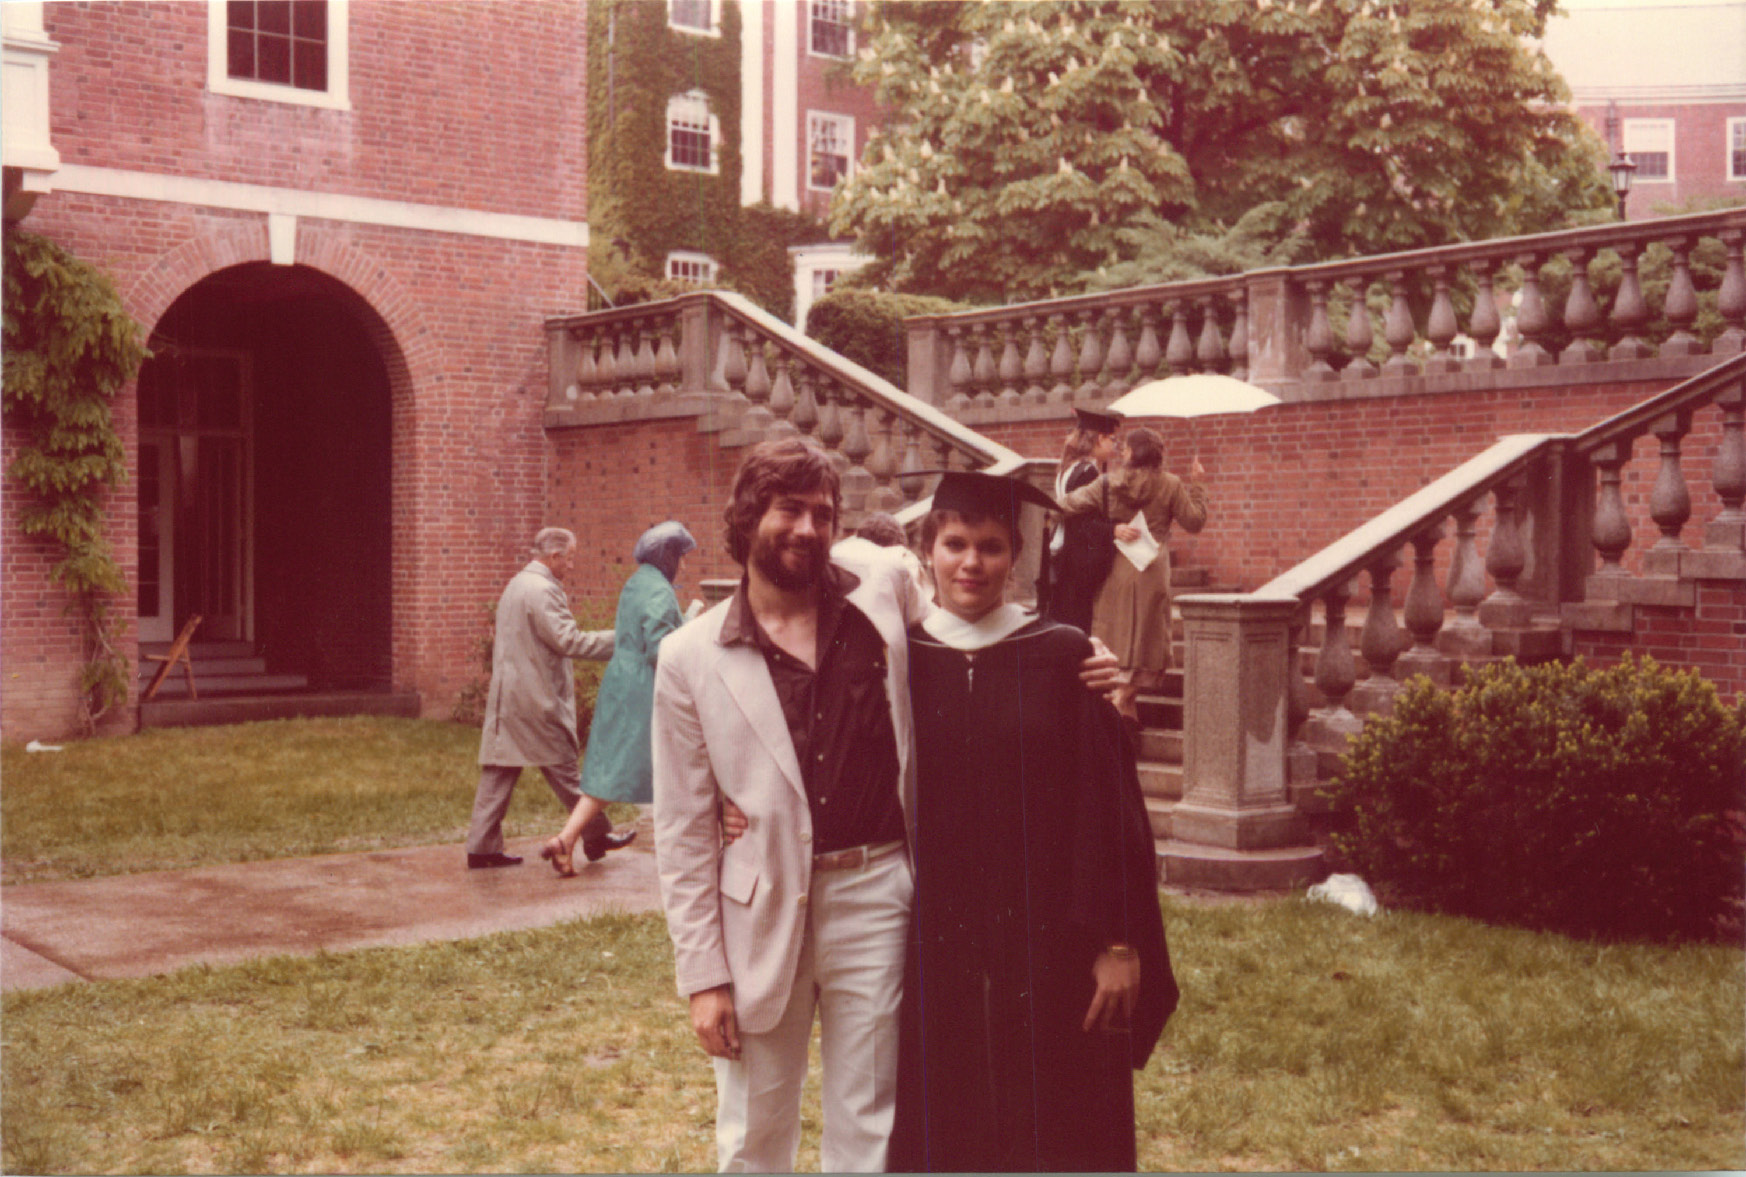 John Wagner & Celeste at her graduation, Smith College, May 17, 1980